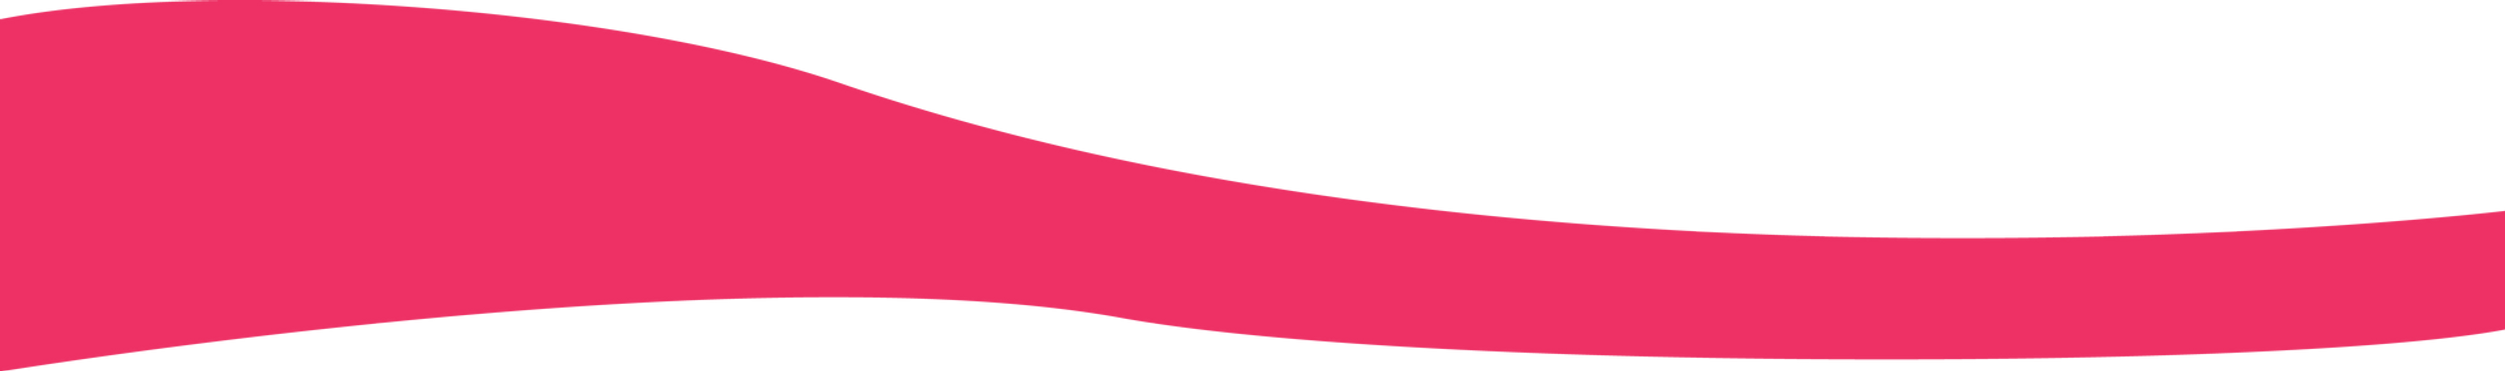 pink full.png